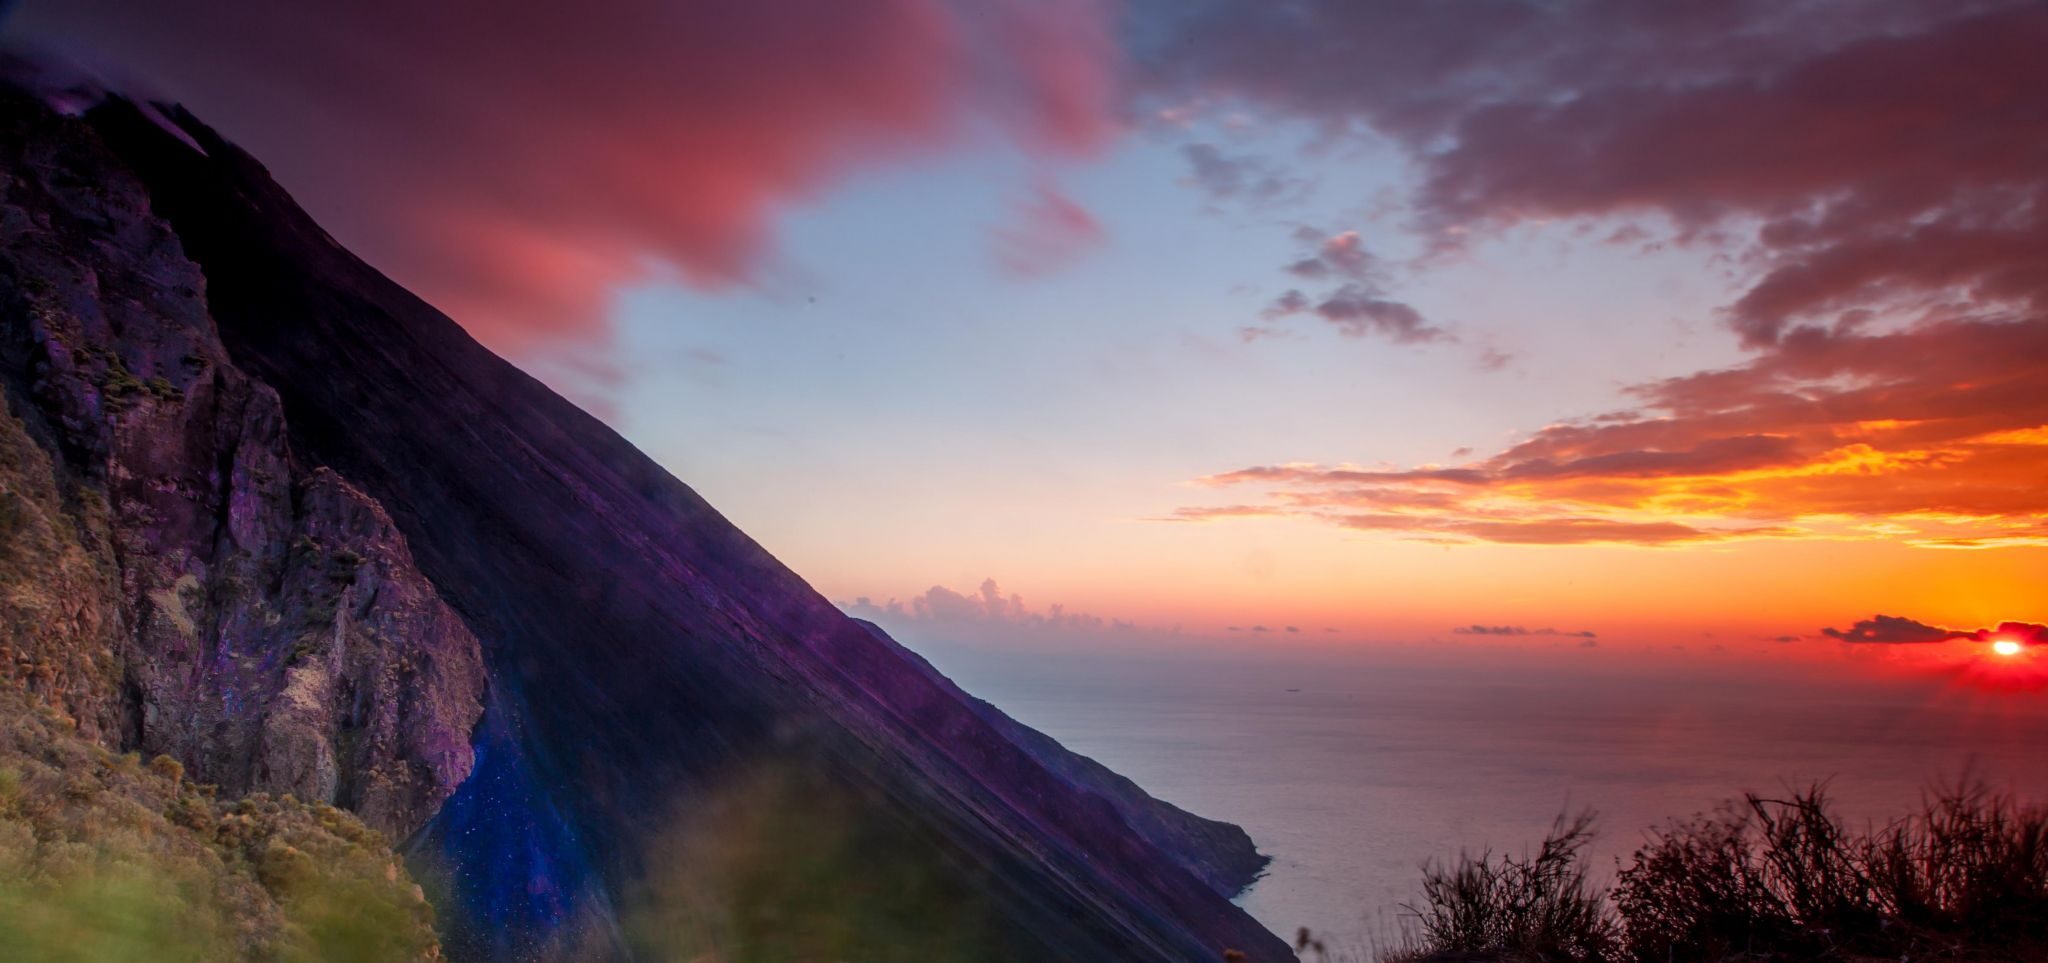 Sunset on the side of the Volcano Stromboli, Italy